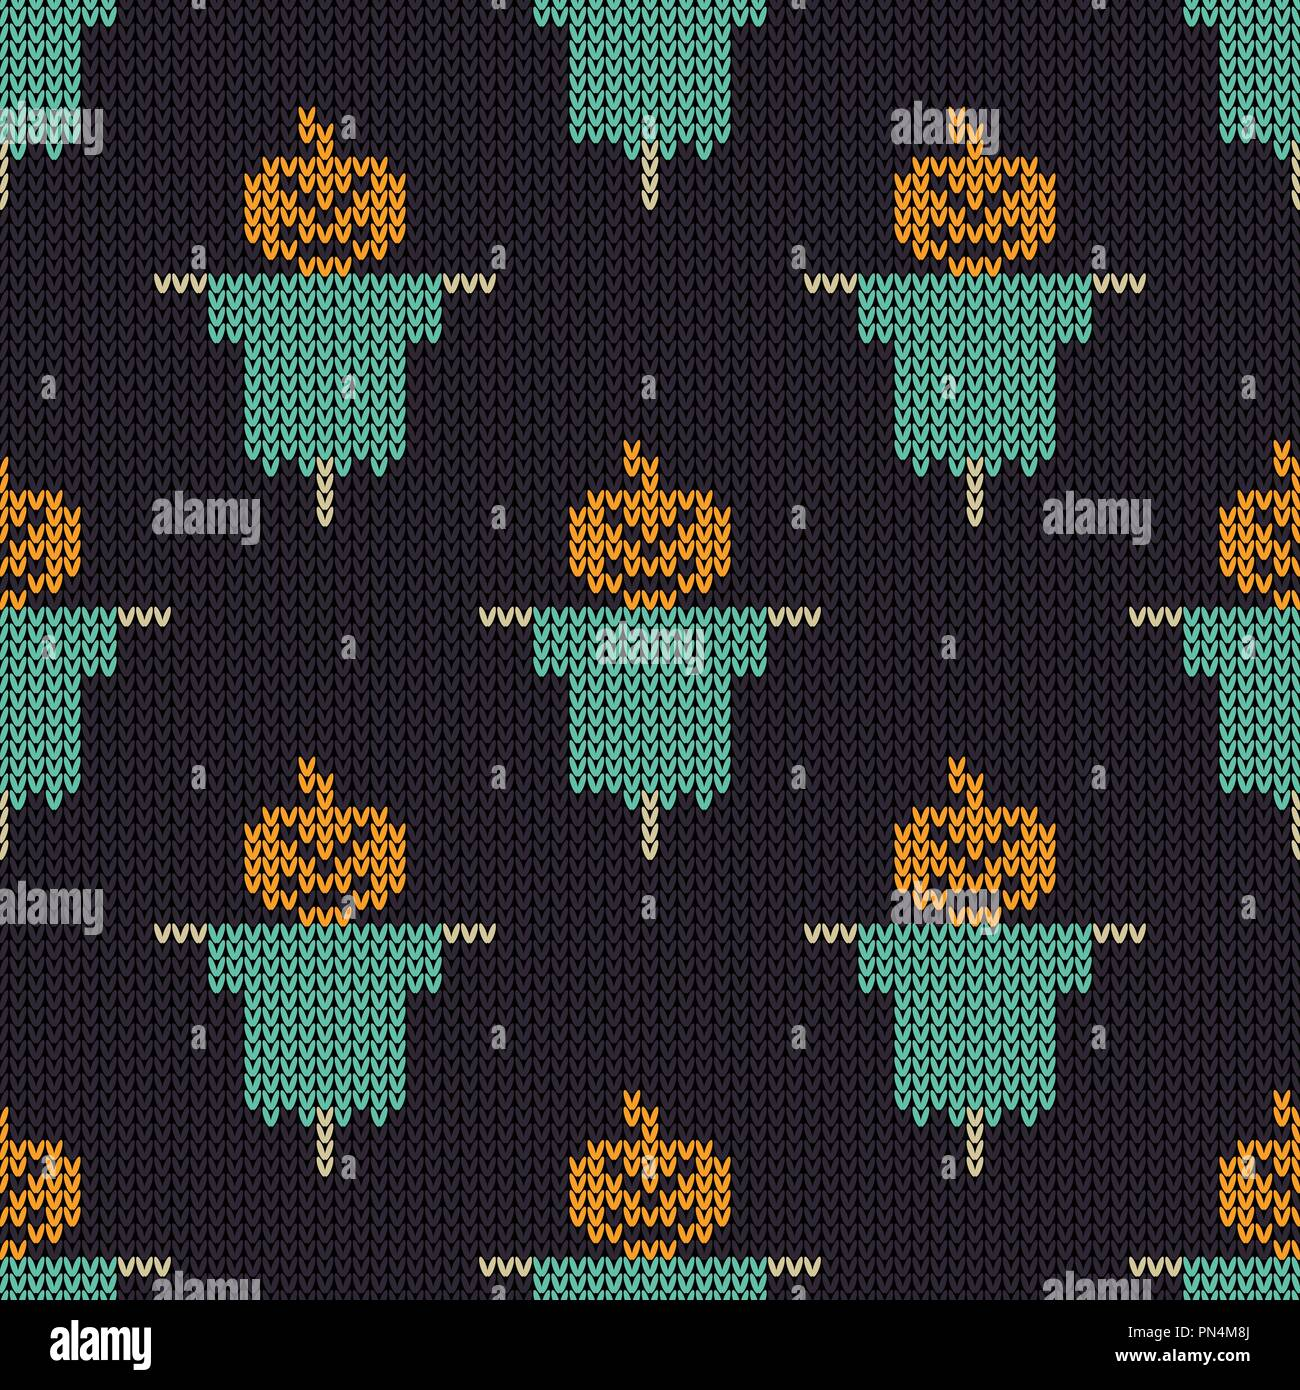 Halloween knitted pattern. Seamless Knitting Texture with pumpkin scarecrow. Design for sweater, scarf, comforter or clothes texture. Vector illustrat - Stock Vector